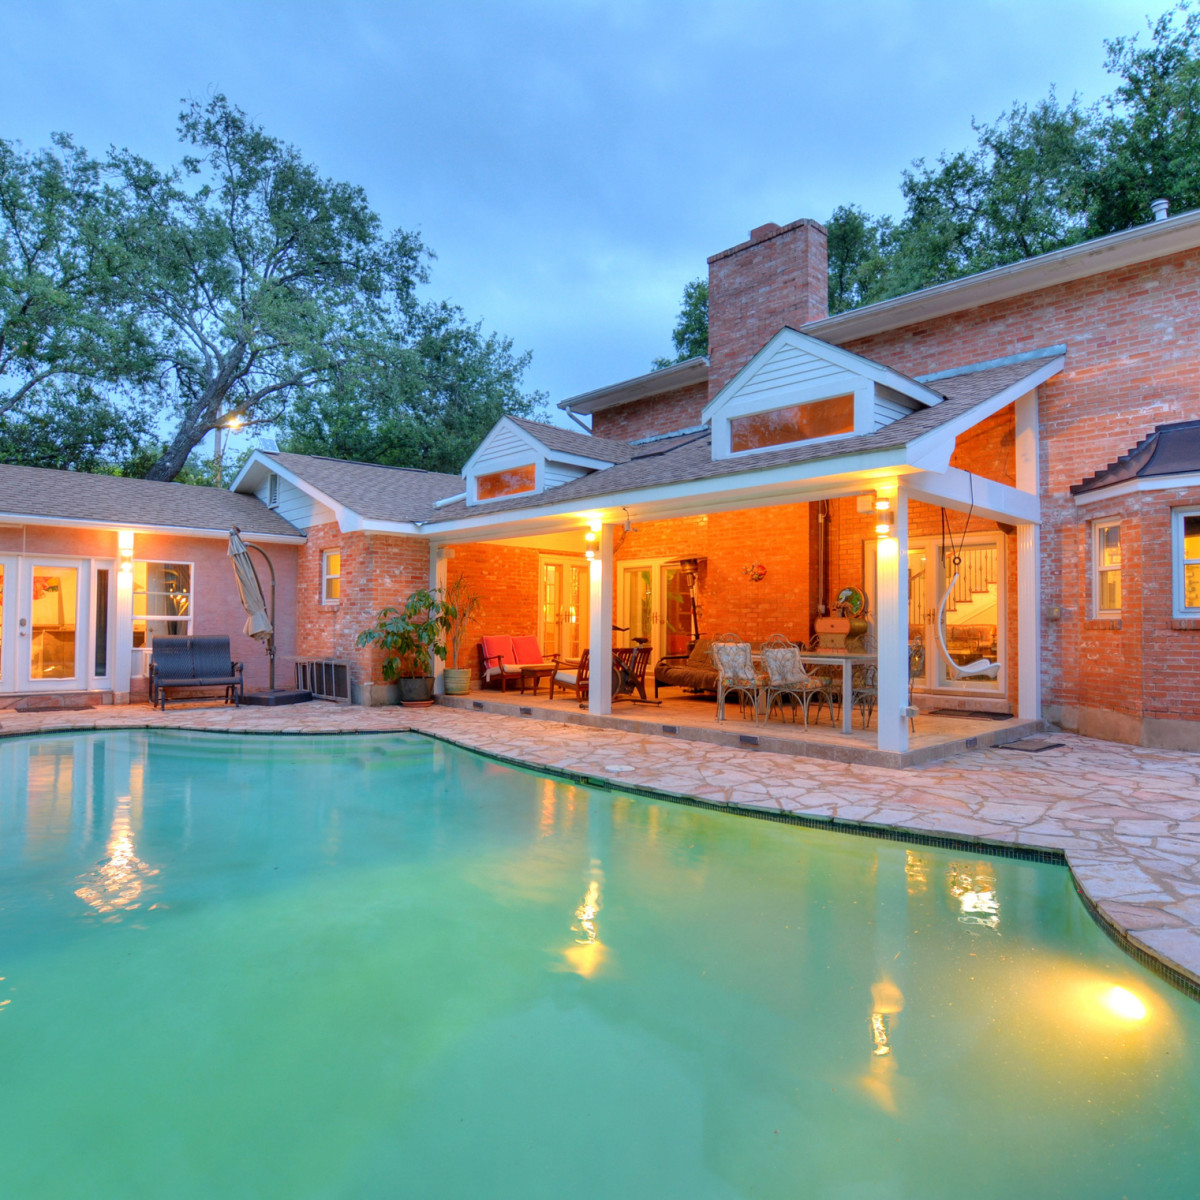 227 Treasure Way San Antonio house for sale pool